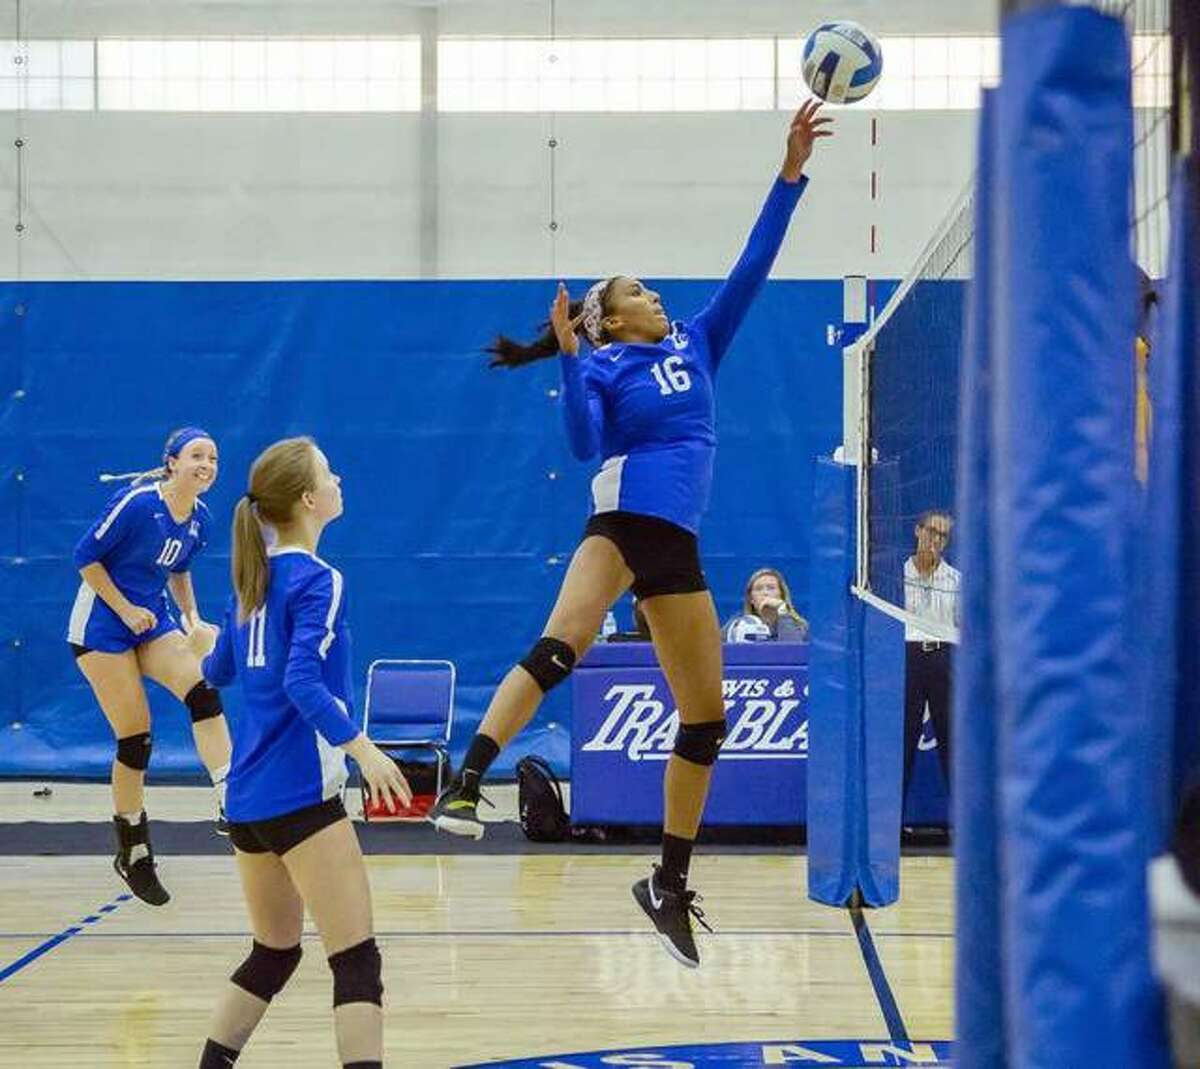 Tiana Wiseman of LCCC (16) reaches high for the ball last season against Frontier Community College. Also pictured are the Trailblazers' Brittney Alexander (10) and Sydney Bates (11).